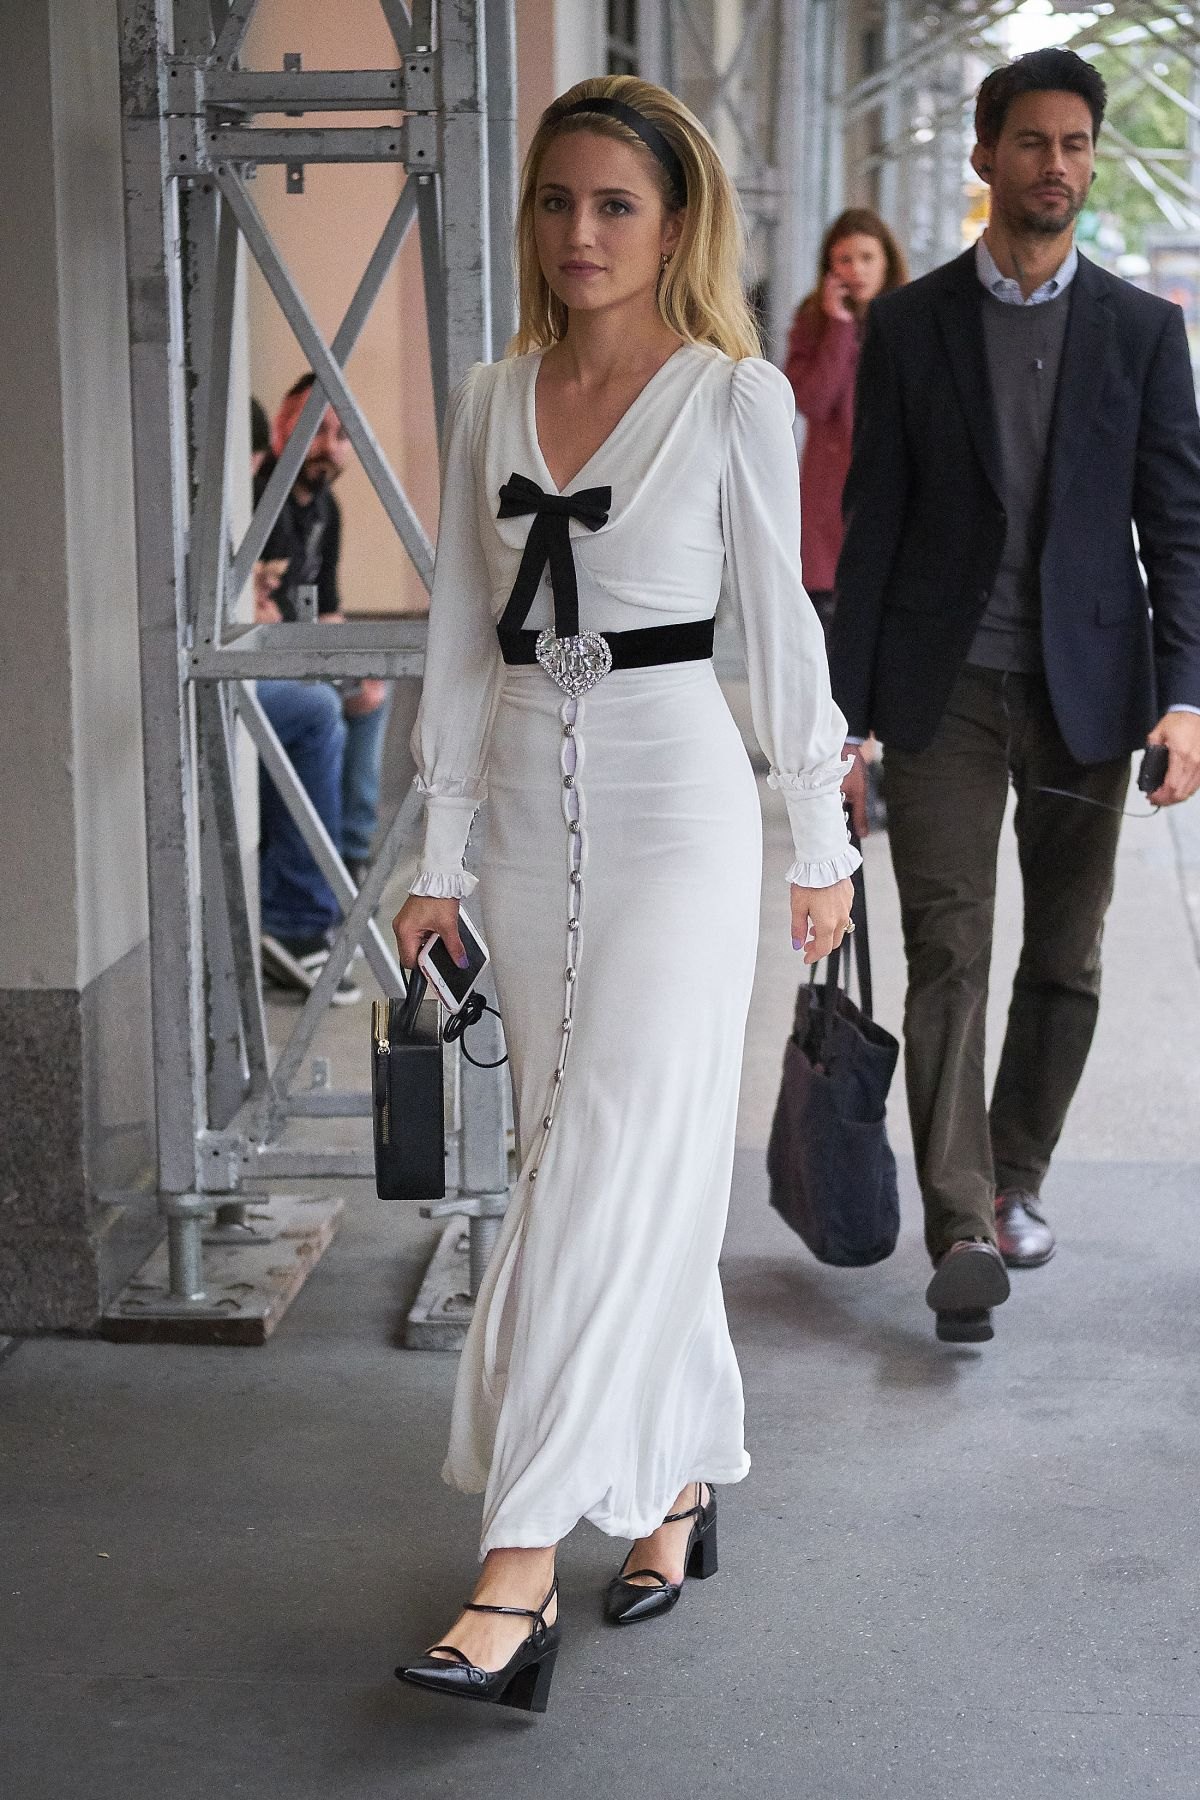 2d06db27dd5 Dianna Agron Seen wearing a white dress while out and .